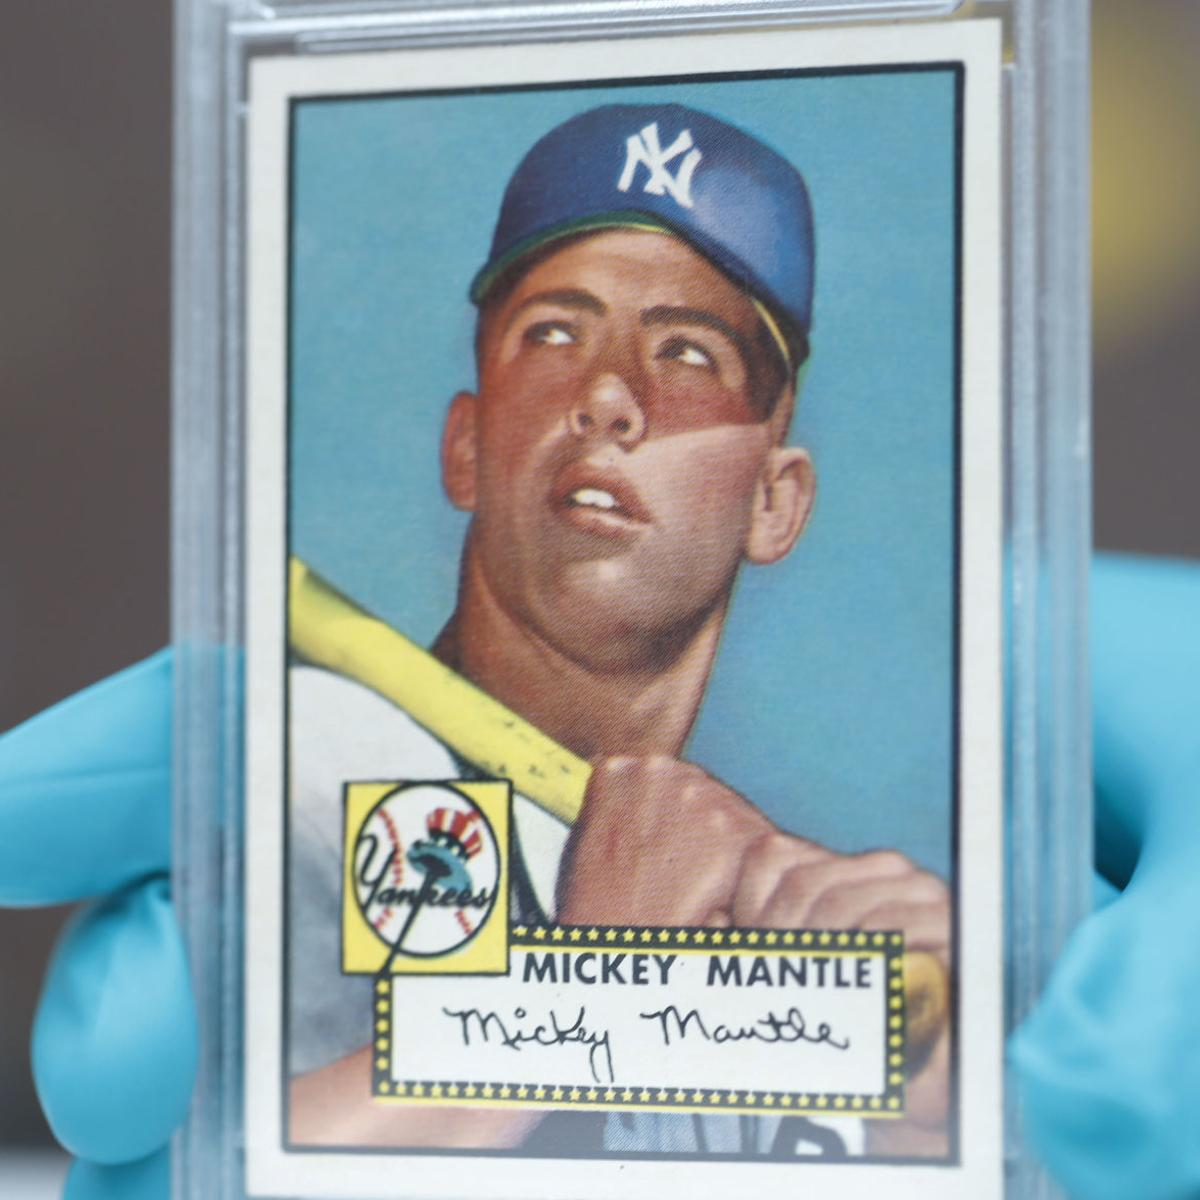 10m 1952 Mantle Card Goes On Display For 72 Hours Major